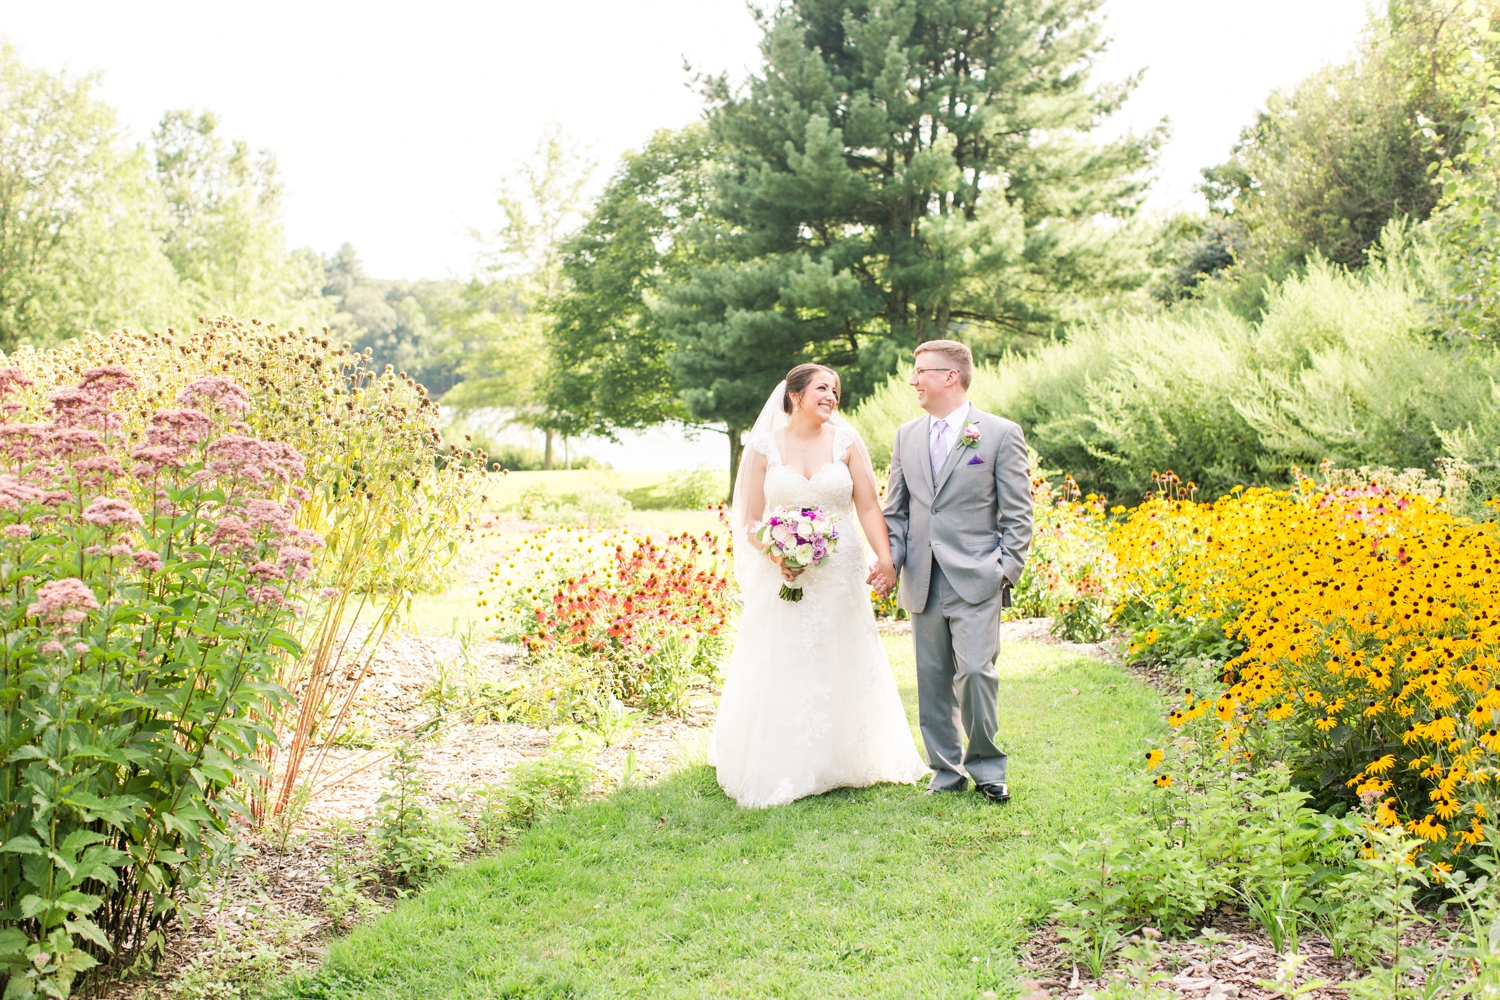 trumbull-connecticut-wedding-photographer-shaina-lee-photography-photo-36.jpg